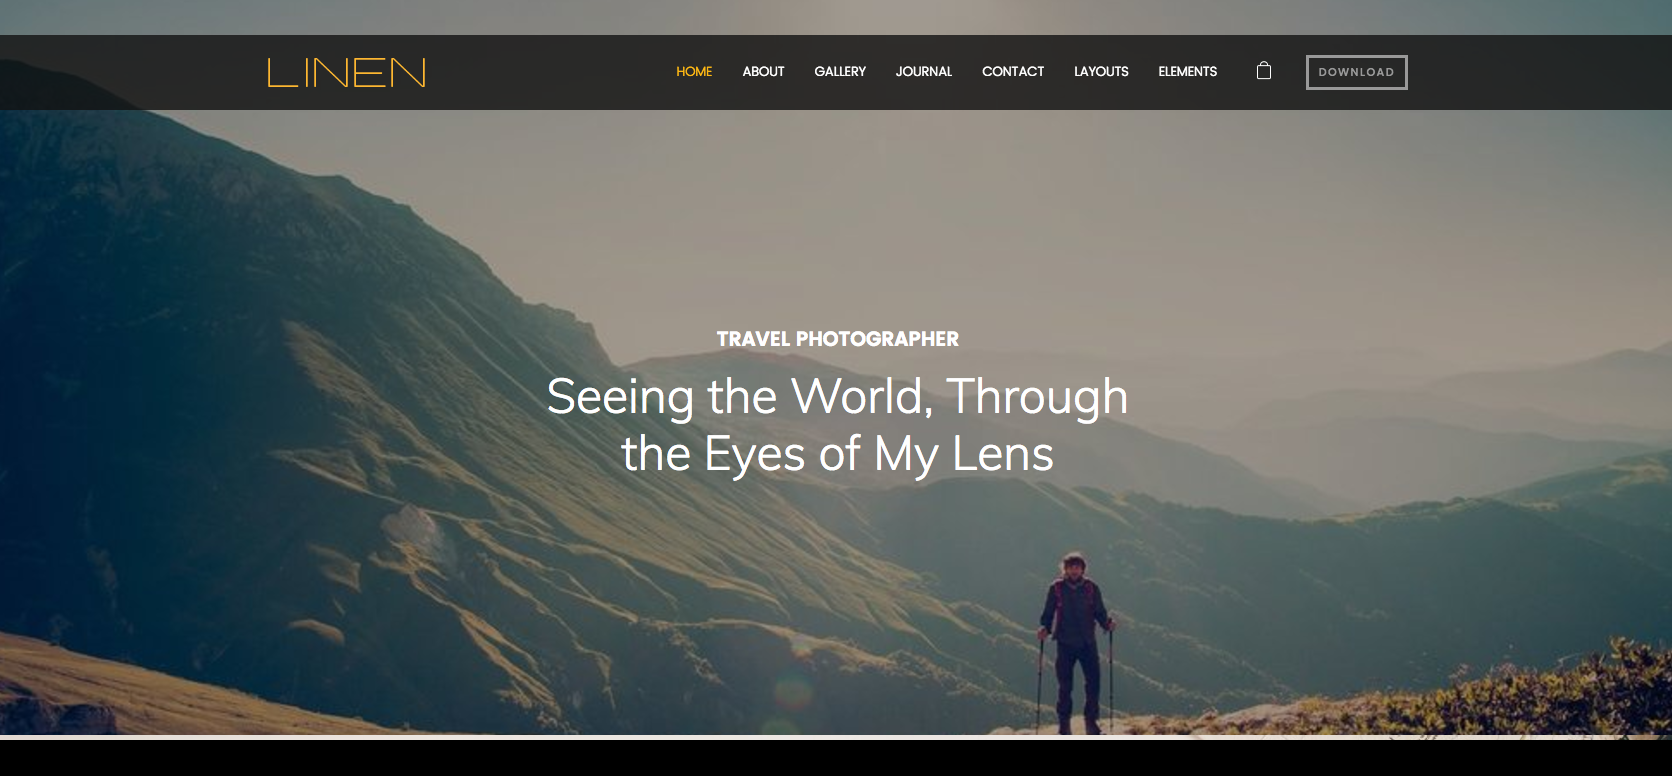 63 Weebly Templates and Designs for Advanced Websites